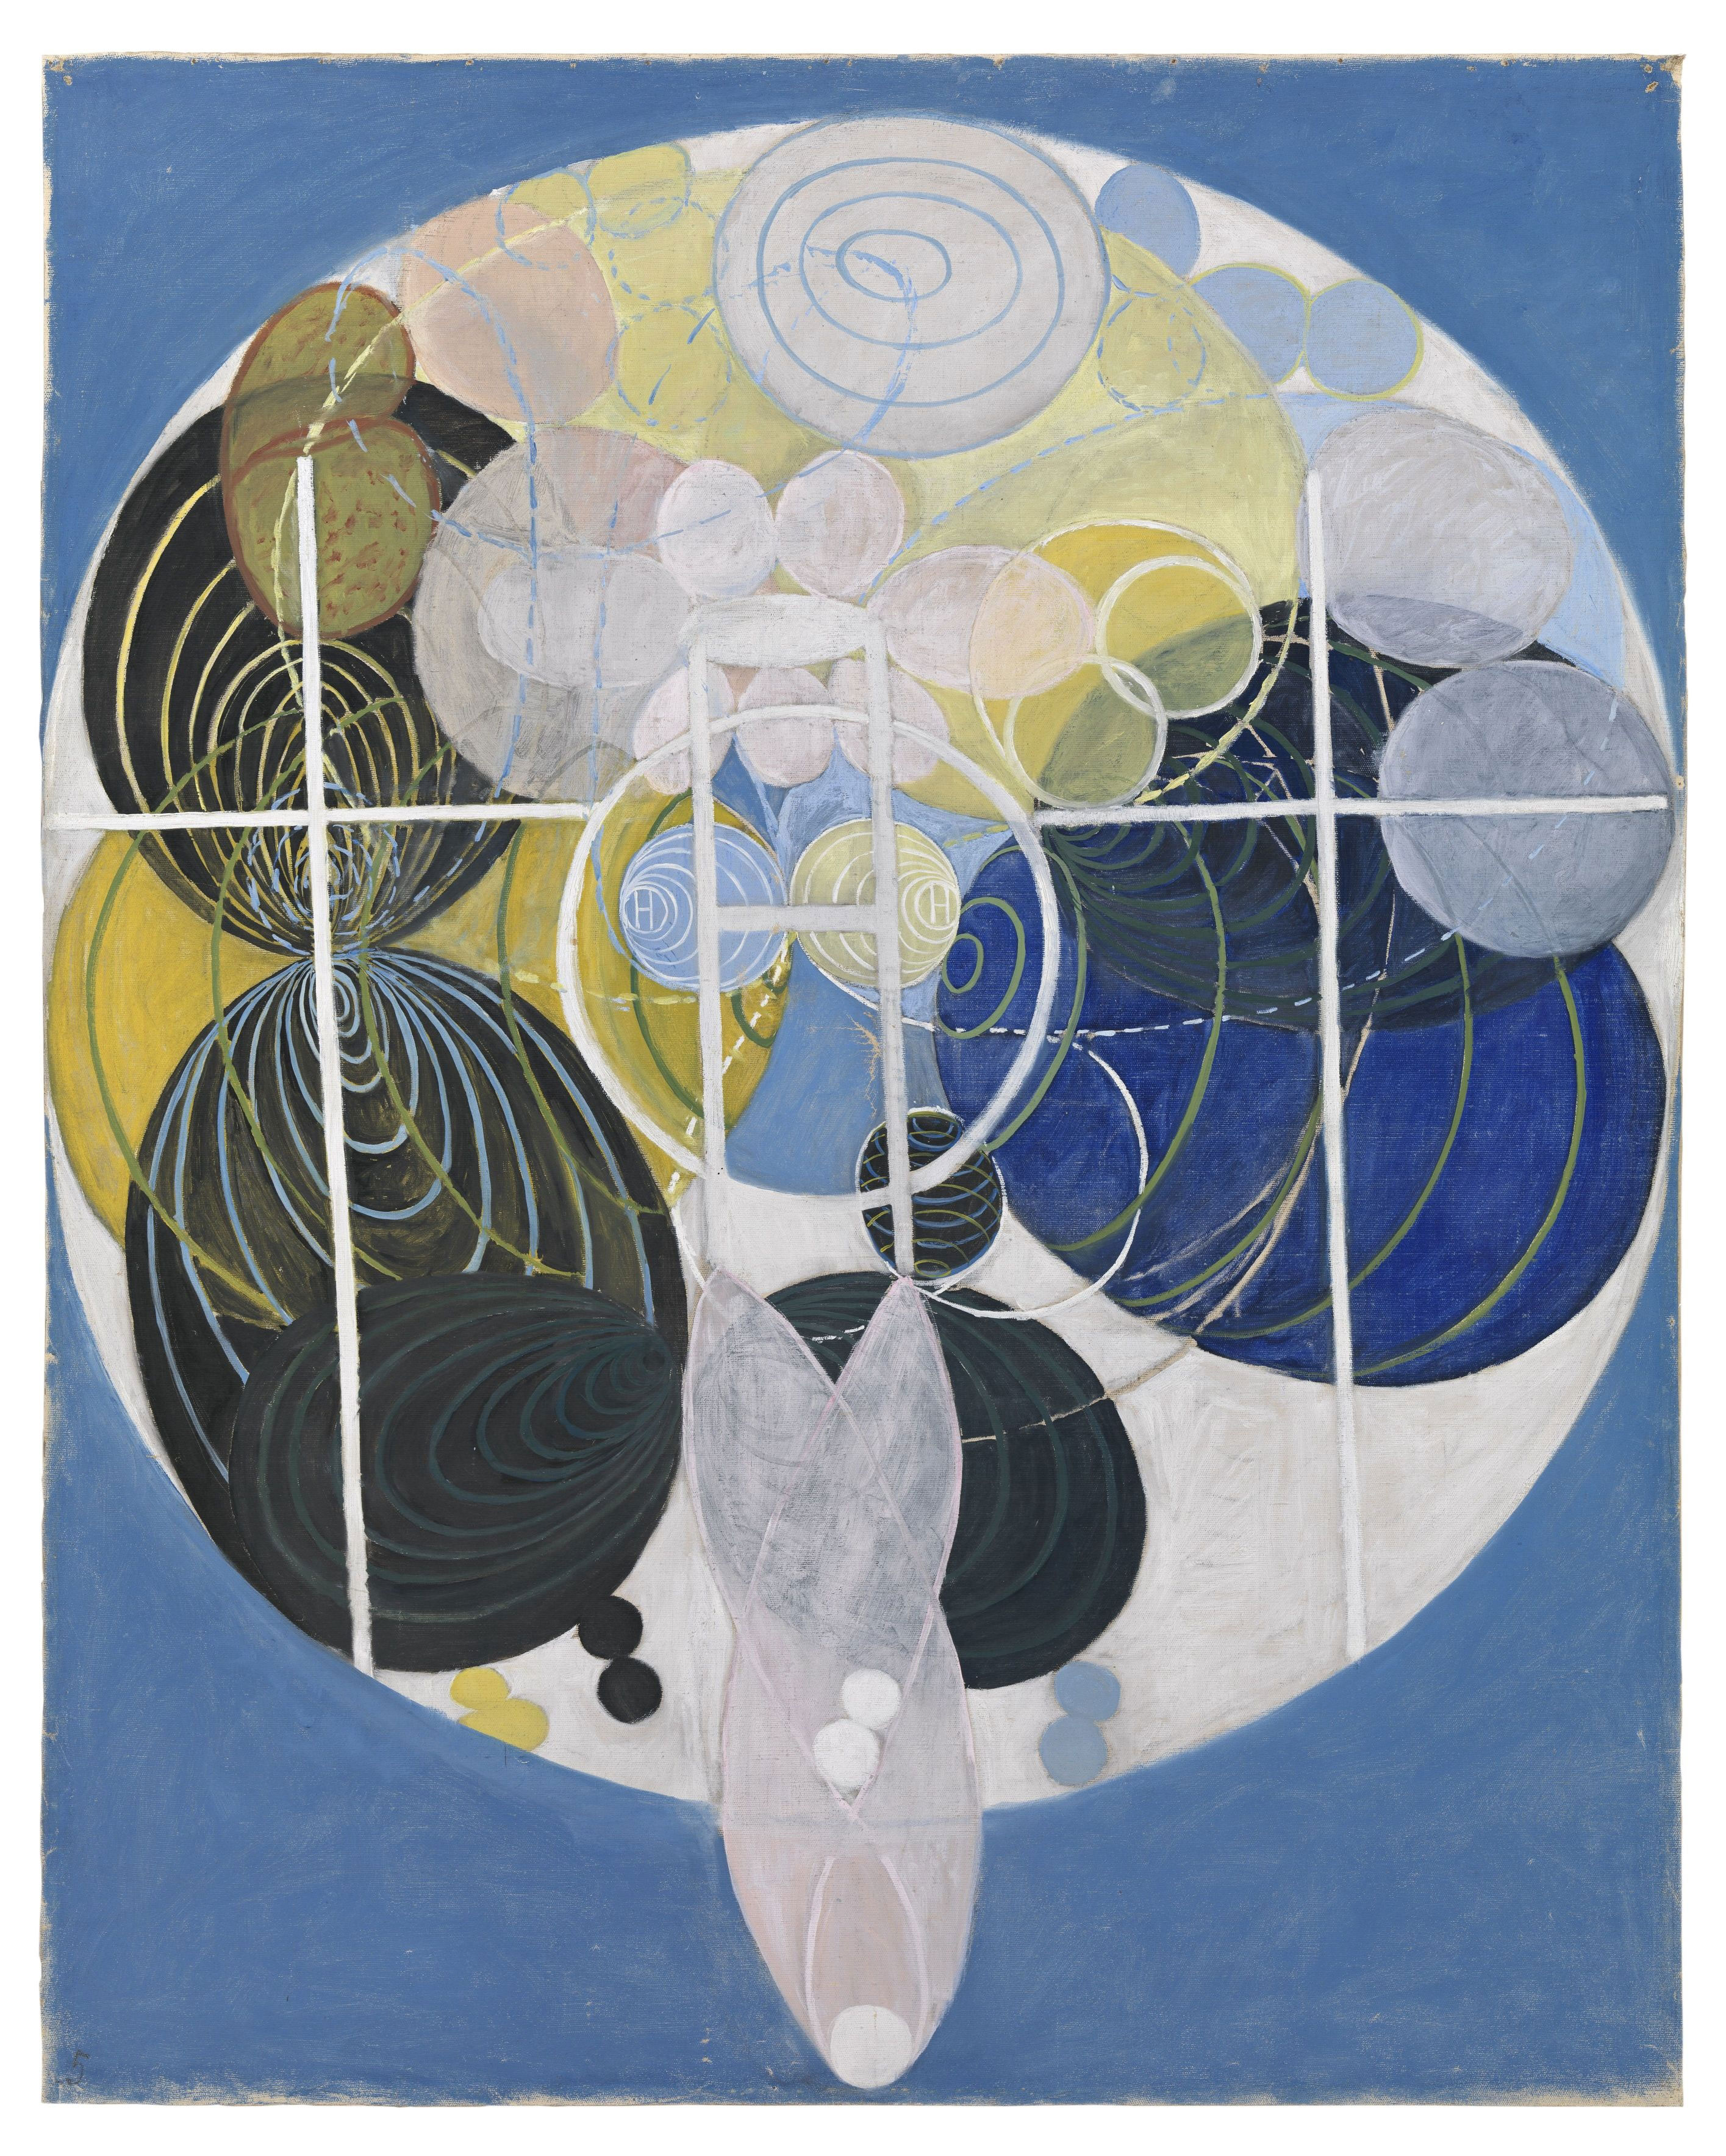 The Large Figure Paintings, No. 5 Group 3, 1907 — Hilma af Klint,